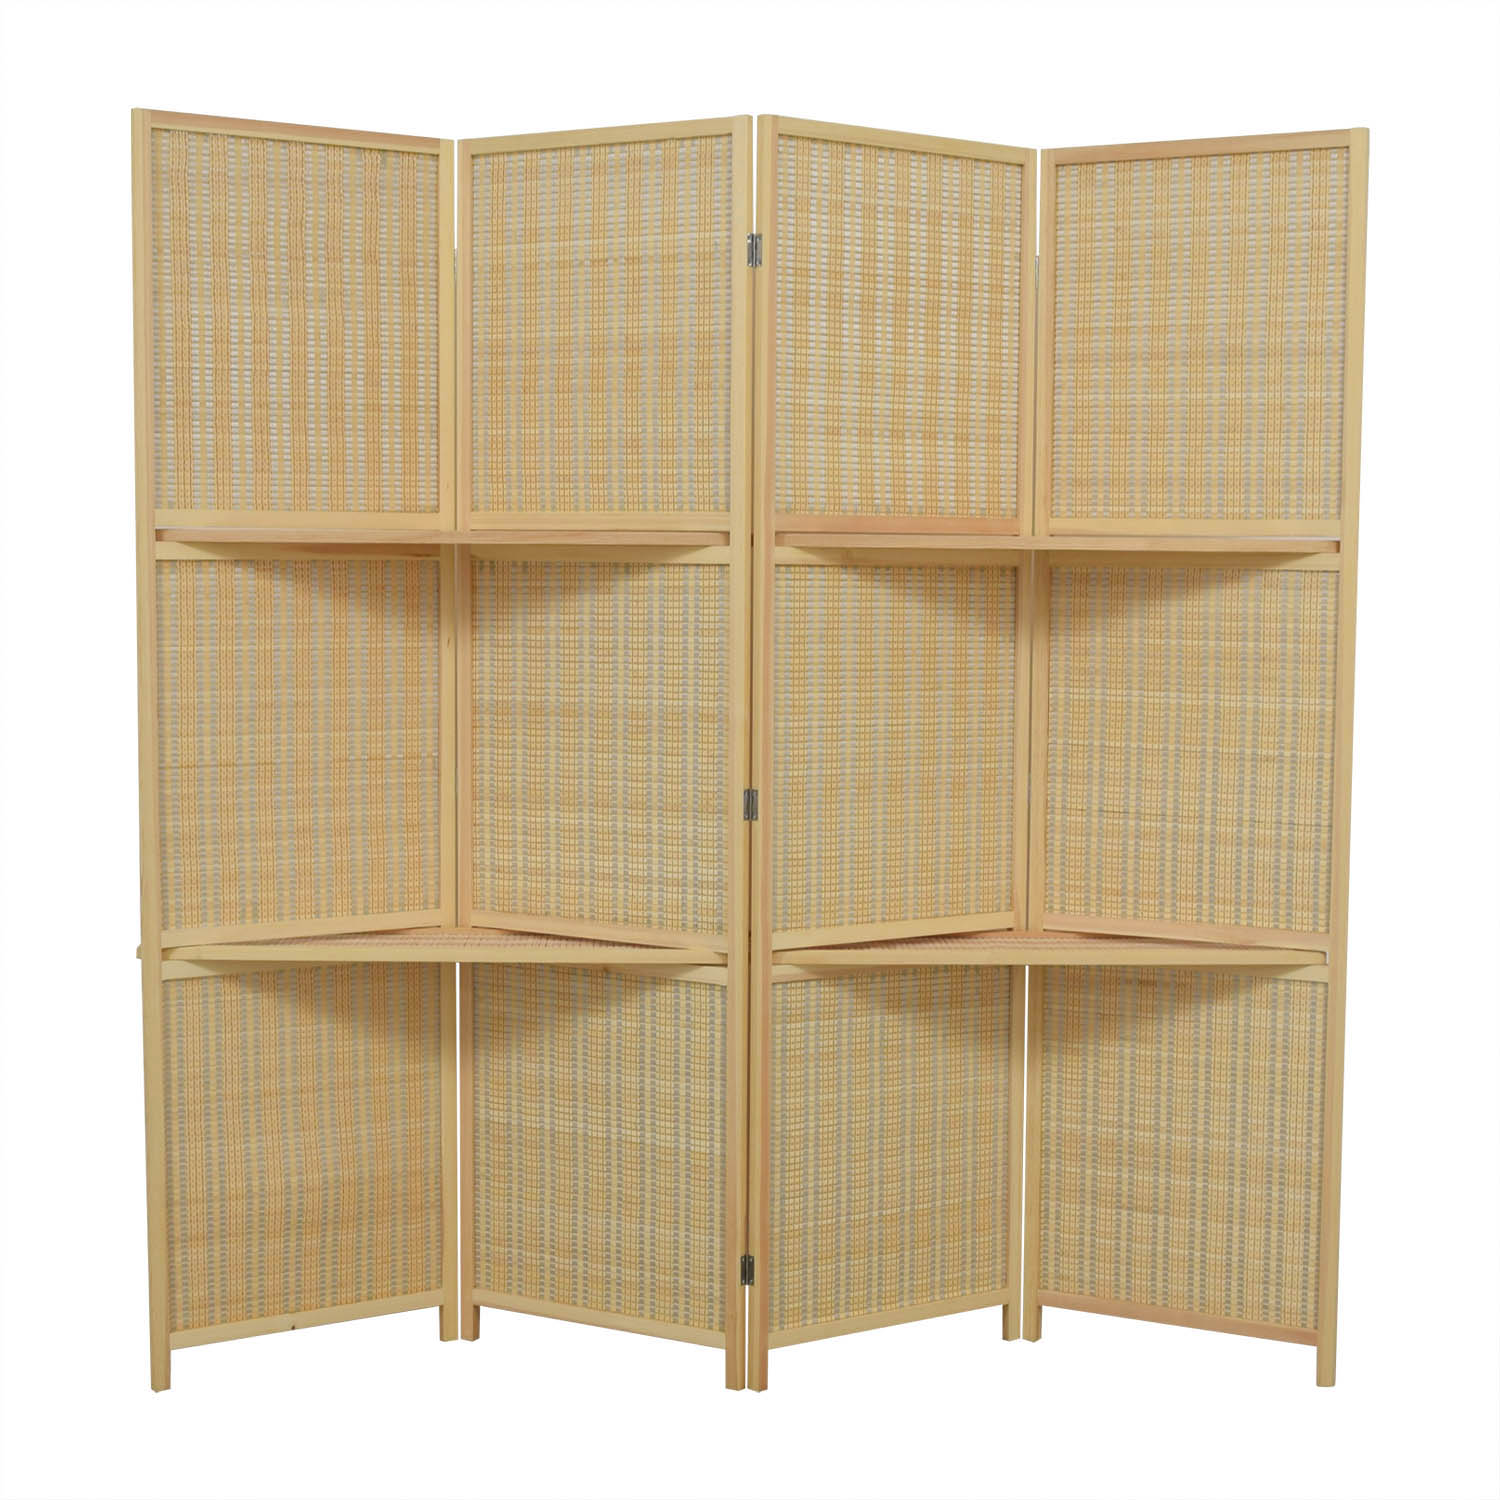 buy MyGift MyGift Woven Bamboo Four Panel Divider Screen w/Removable Storage Shelves online